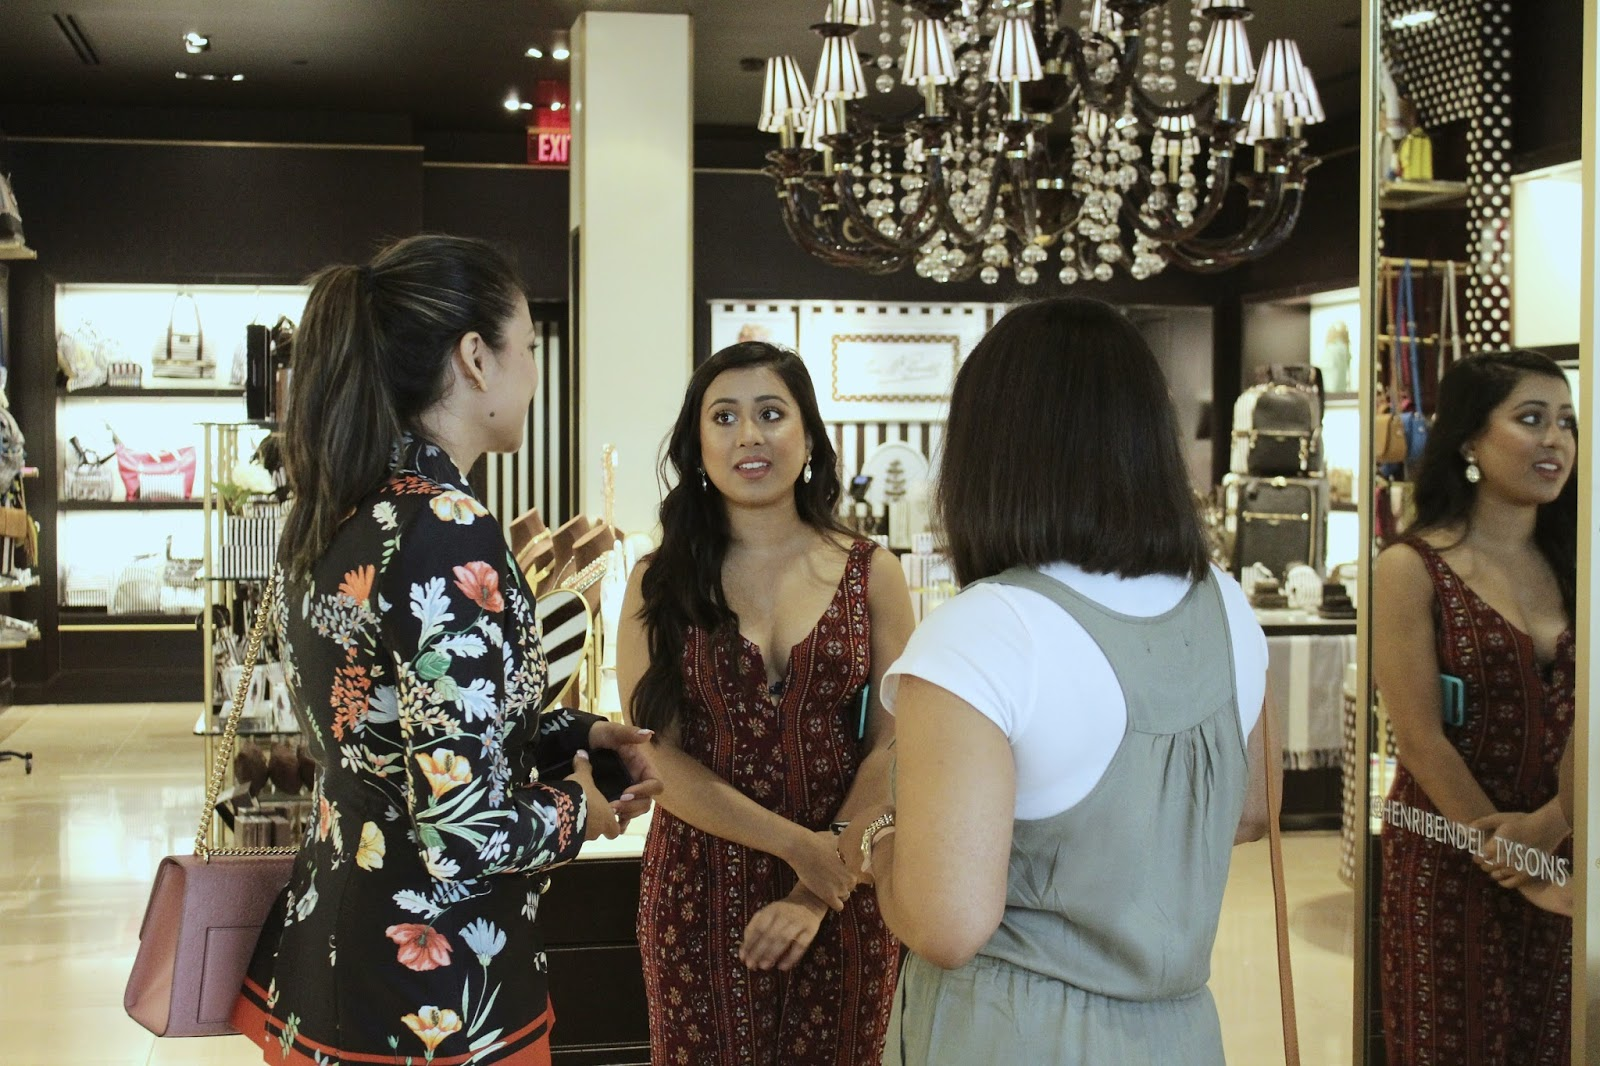 SHOPPING AT HENRI BENDEL, TYSONS CORNER MALL, fashion , retail therapy, bloggedrs event, style, pant suit, printed suit, myriad musings